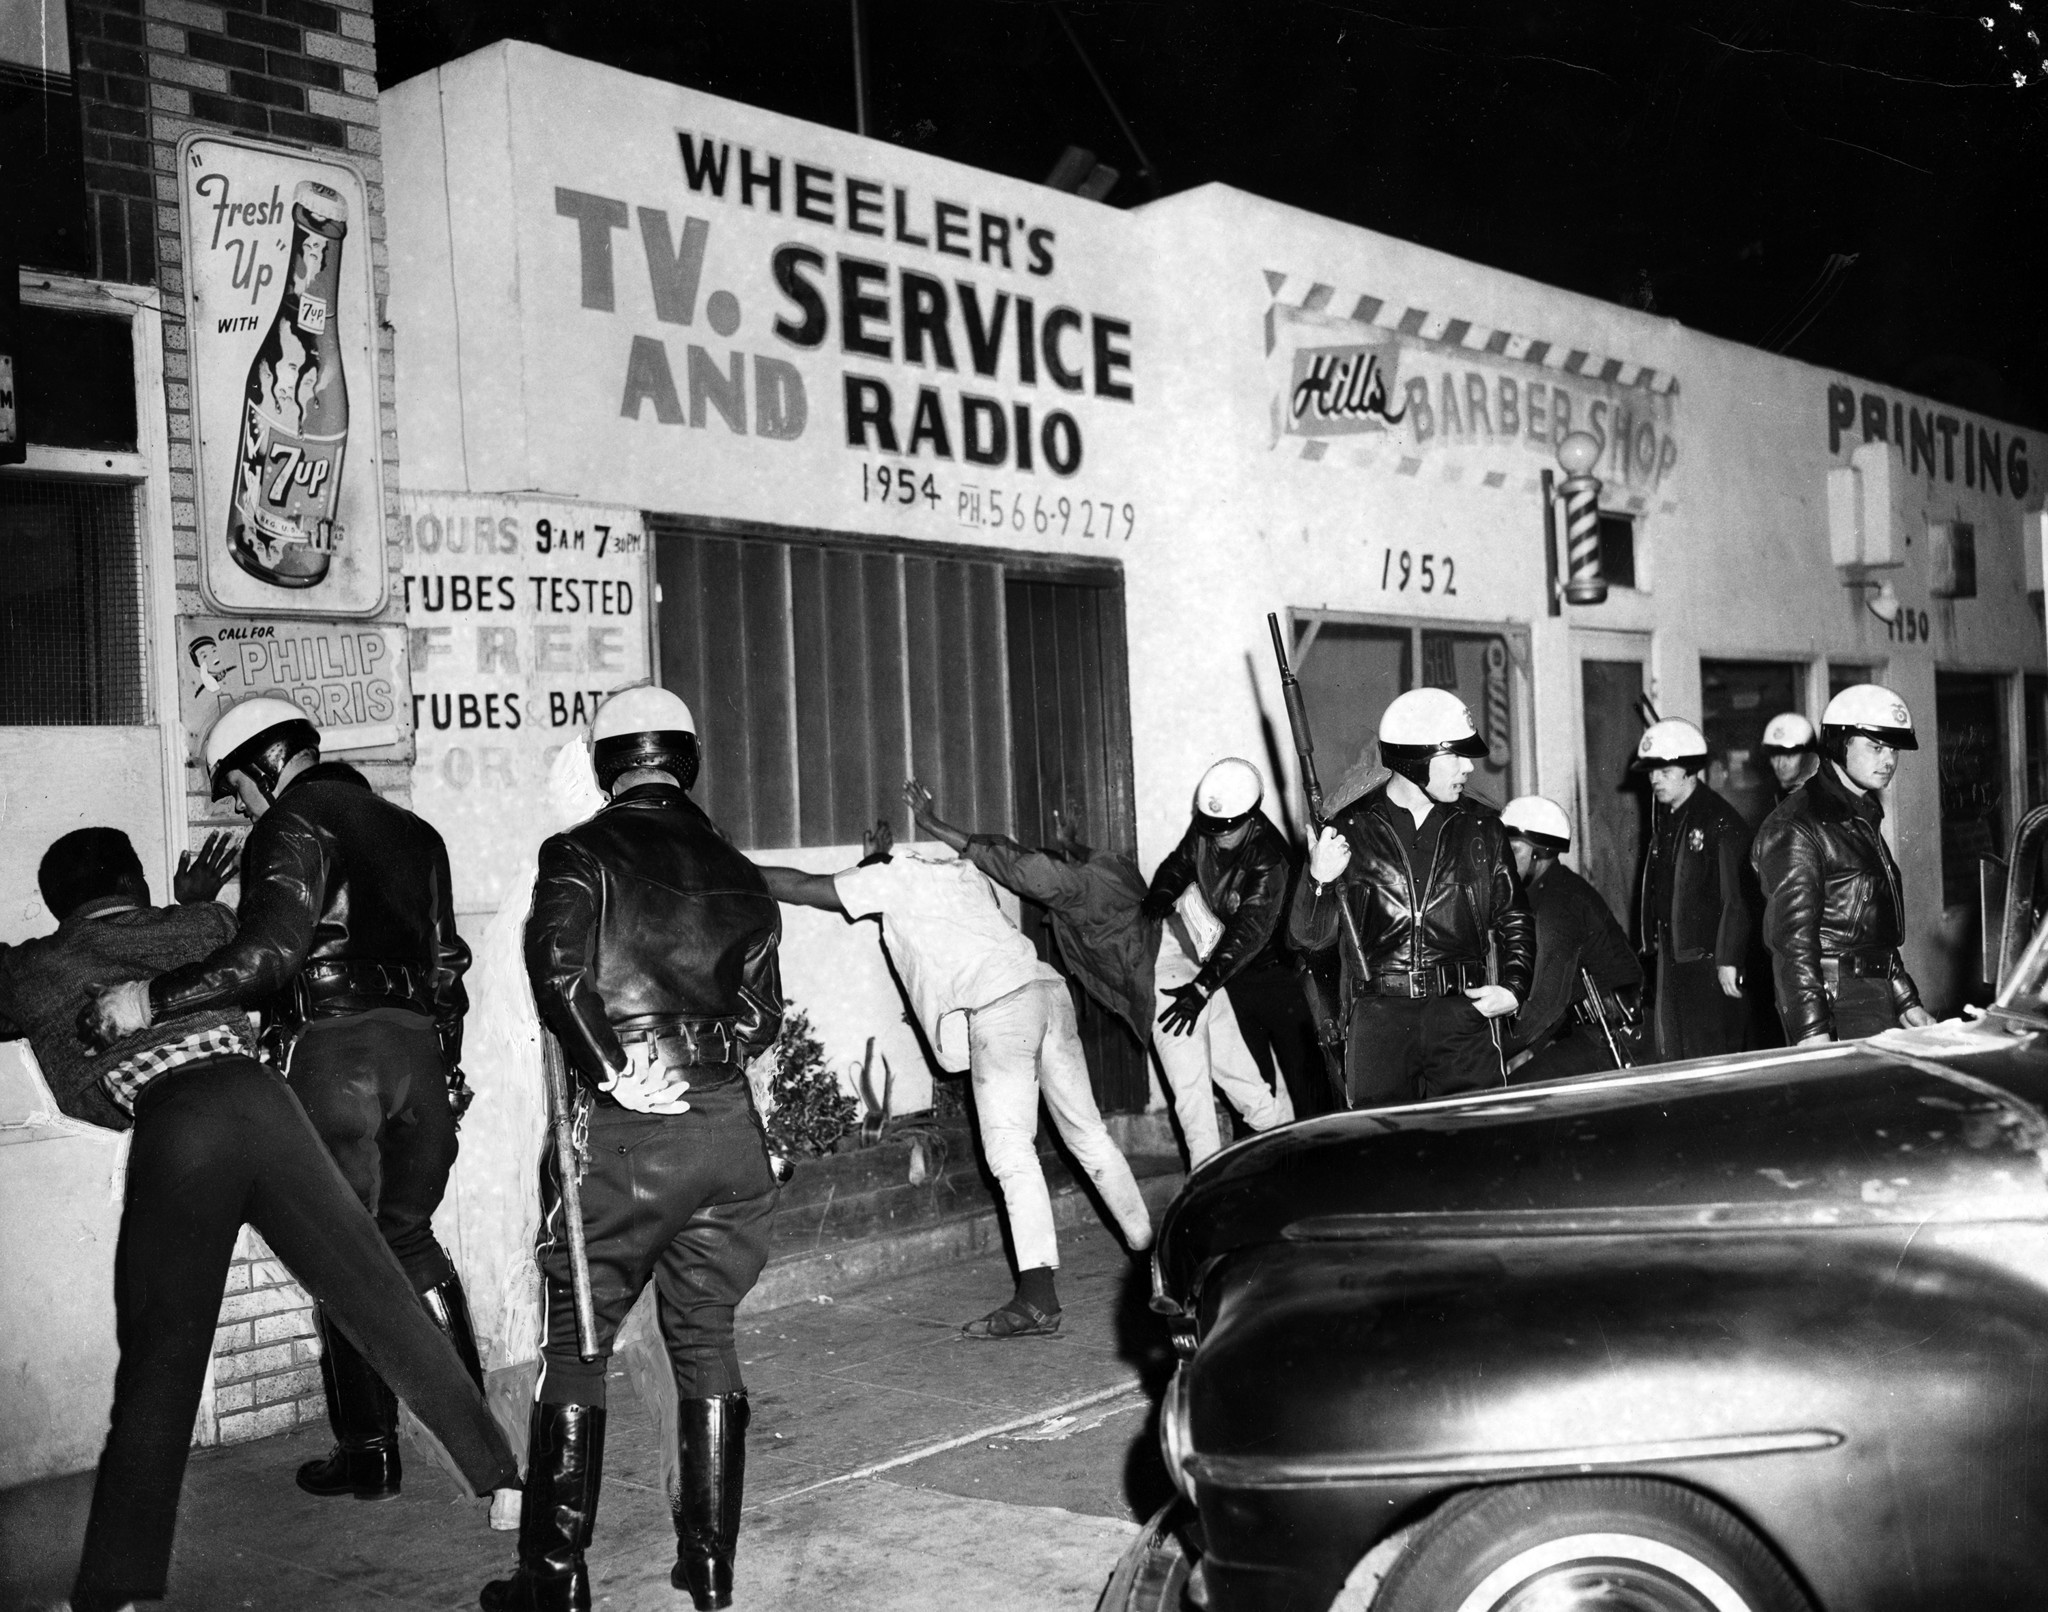 Cliff Wesselmann --Search for weapons, Watts Riots, 1965. Digital image from a photographic print. C